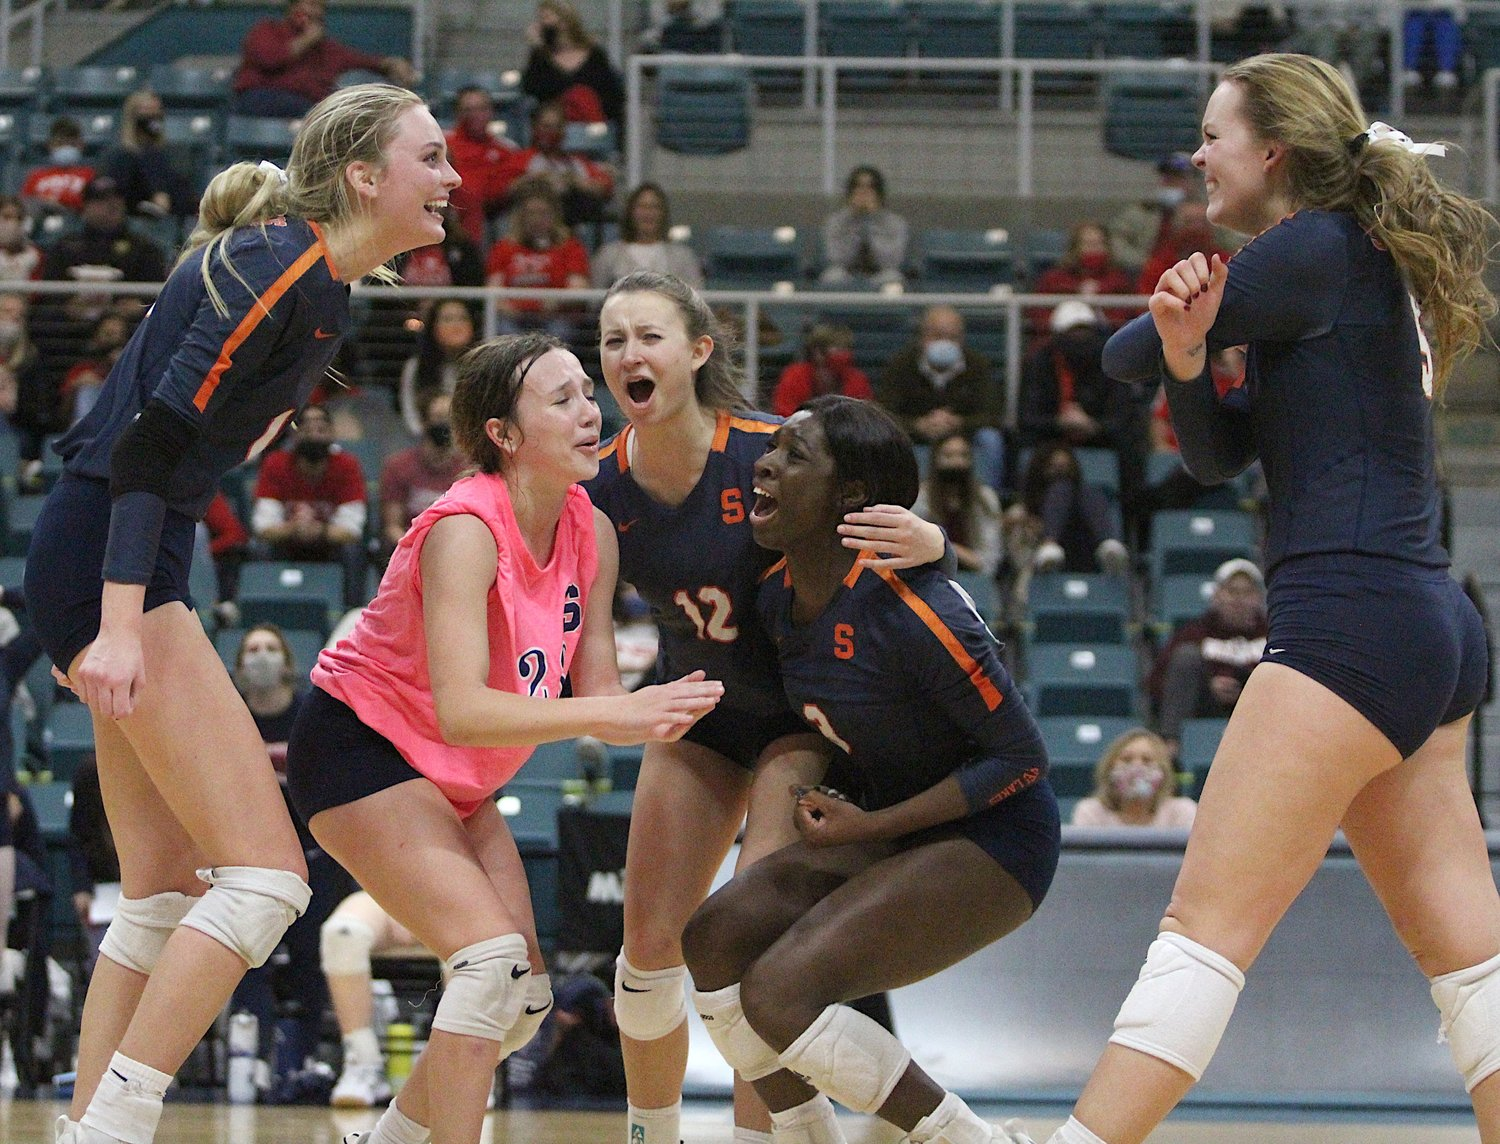 Seven Lakes senior Ally Batenhorst (front left) and junior Casey Batenhorst (front right) are enjoying the Spartans' remarkable run to the Class 6A state volleyball final. Ally is returning to the state final after making it with her older sister, Dani, in 2017. Now with younger sister Casey, she's hoping the second time can bring home a state title.